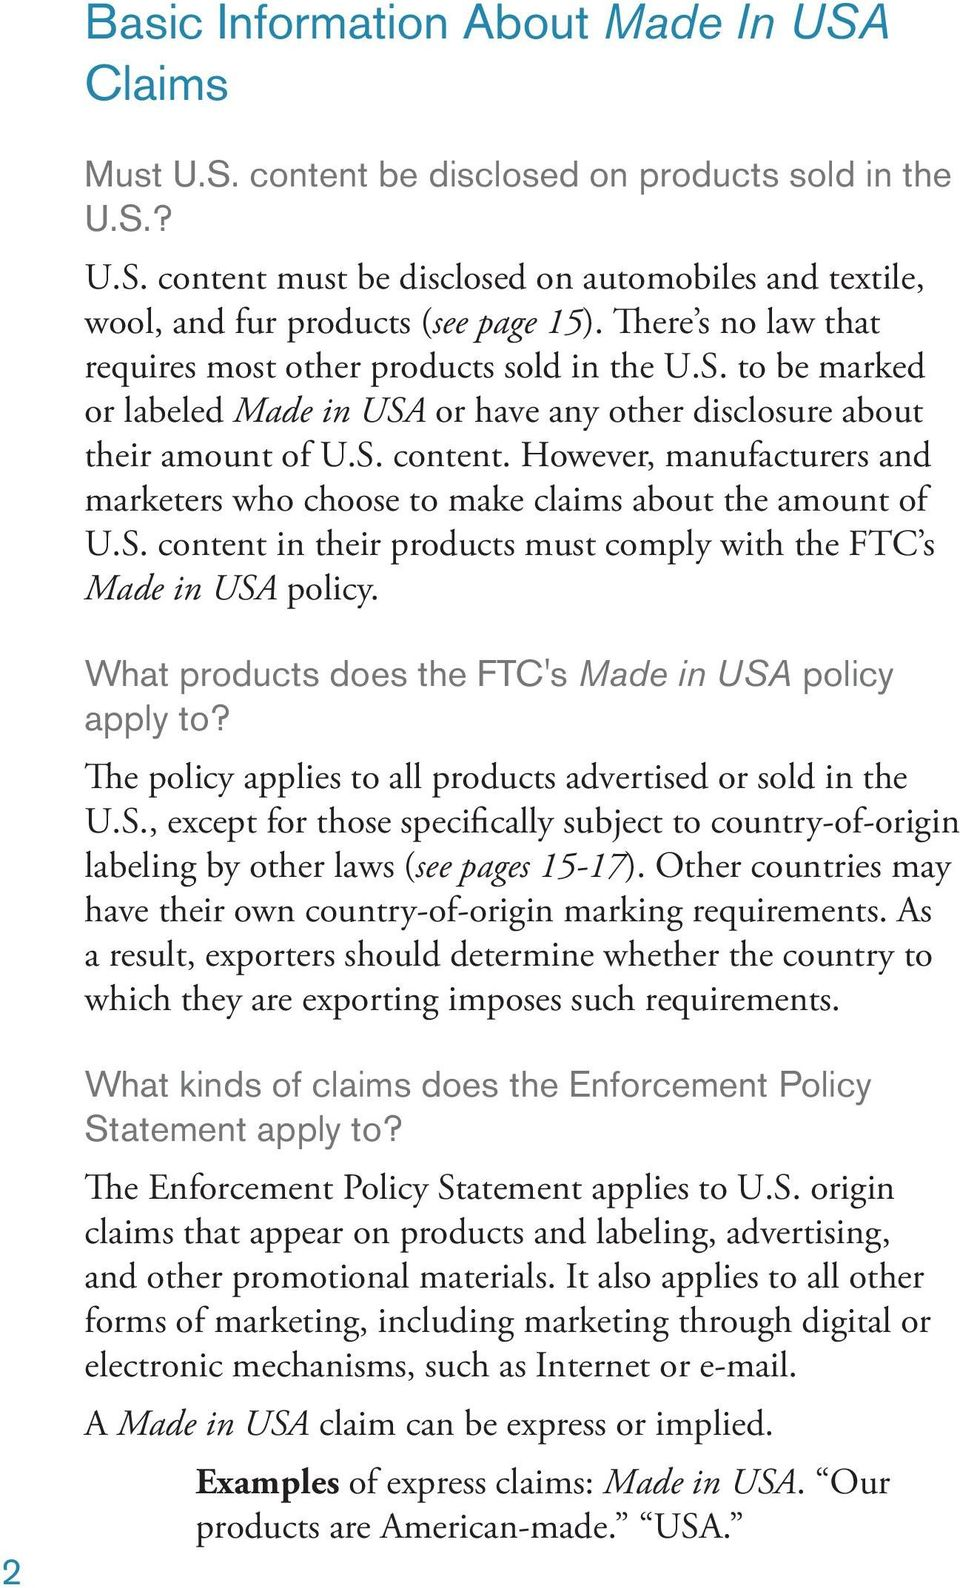 However, manufacturers and marketers who choose to make claims about the amount of U.S. content in their products must comply with the FTC s Made in USA policy.